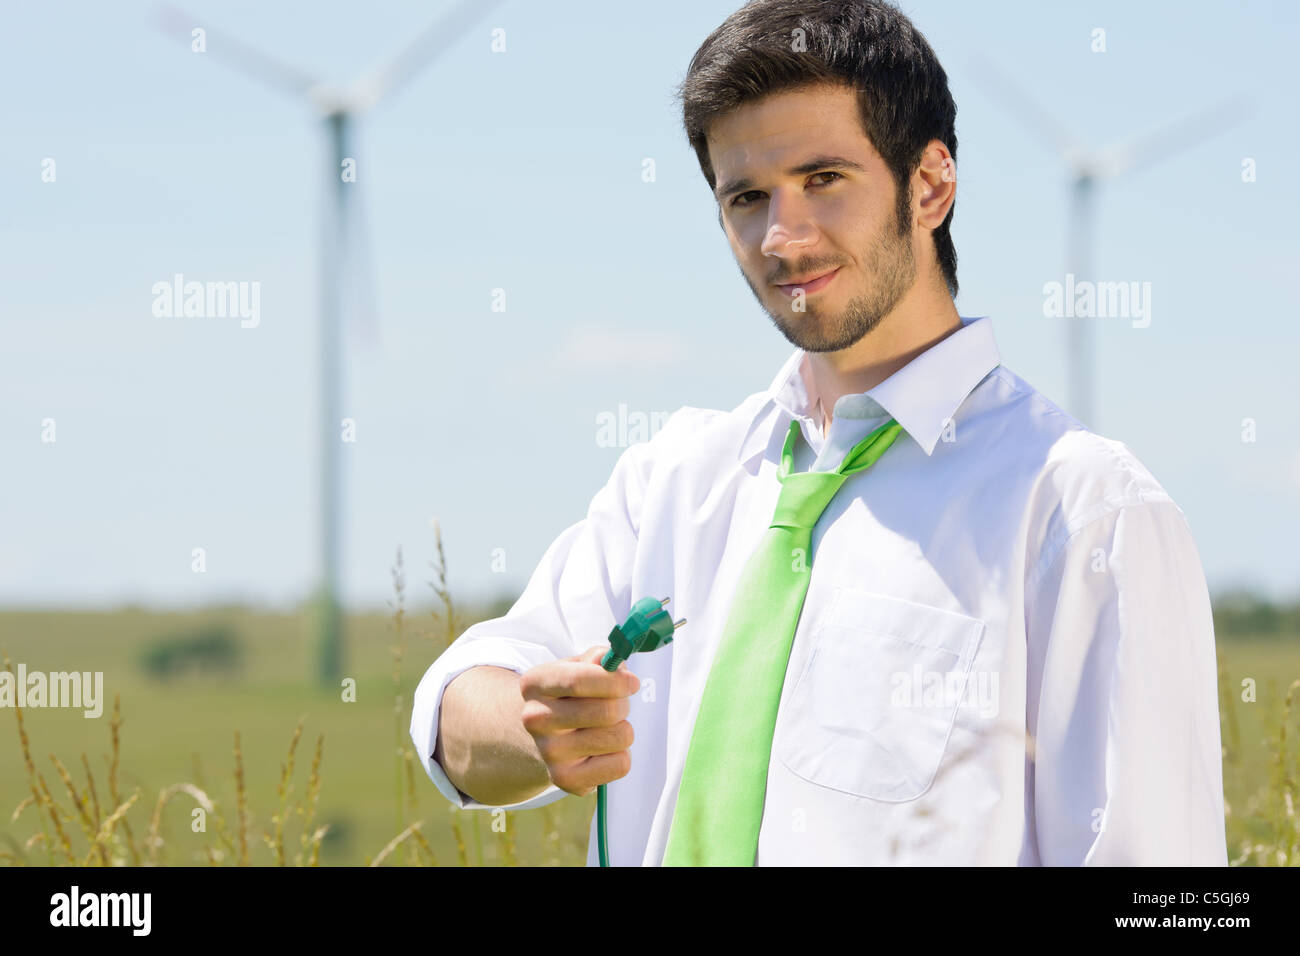 Green energy - young businessman hold plug in field with windmill - Stock Image